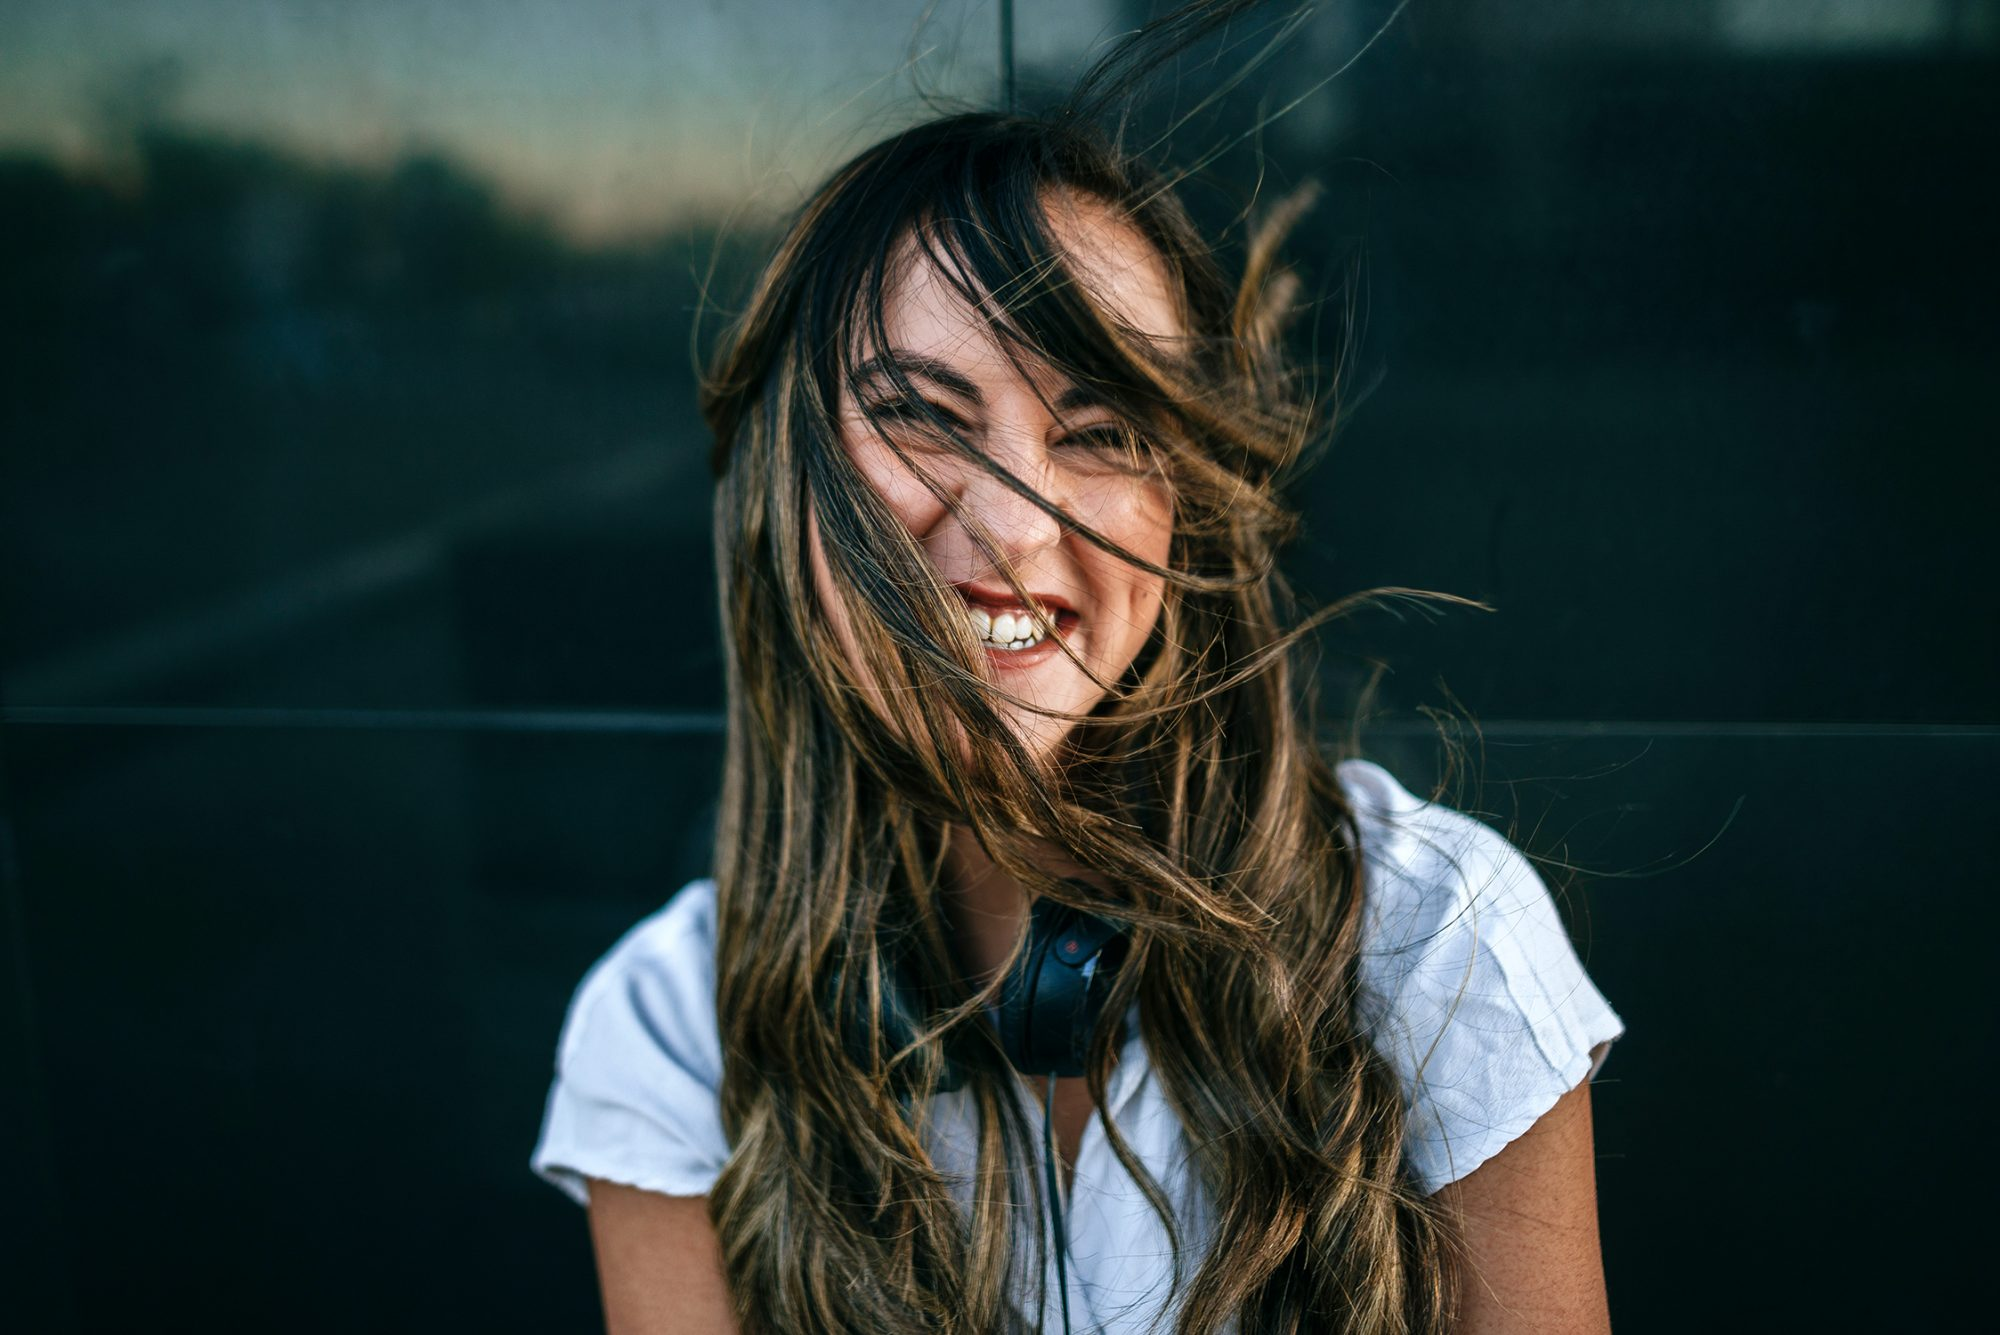 Laughing woman with hairs on her face, black background